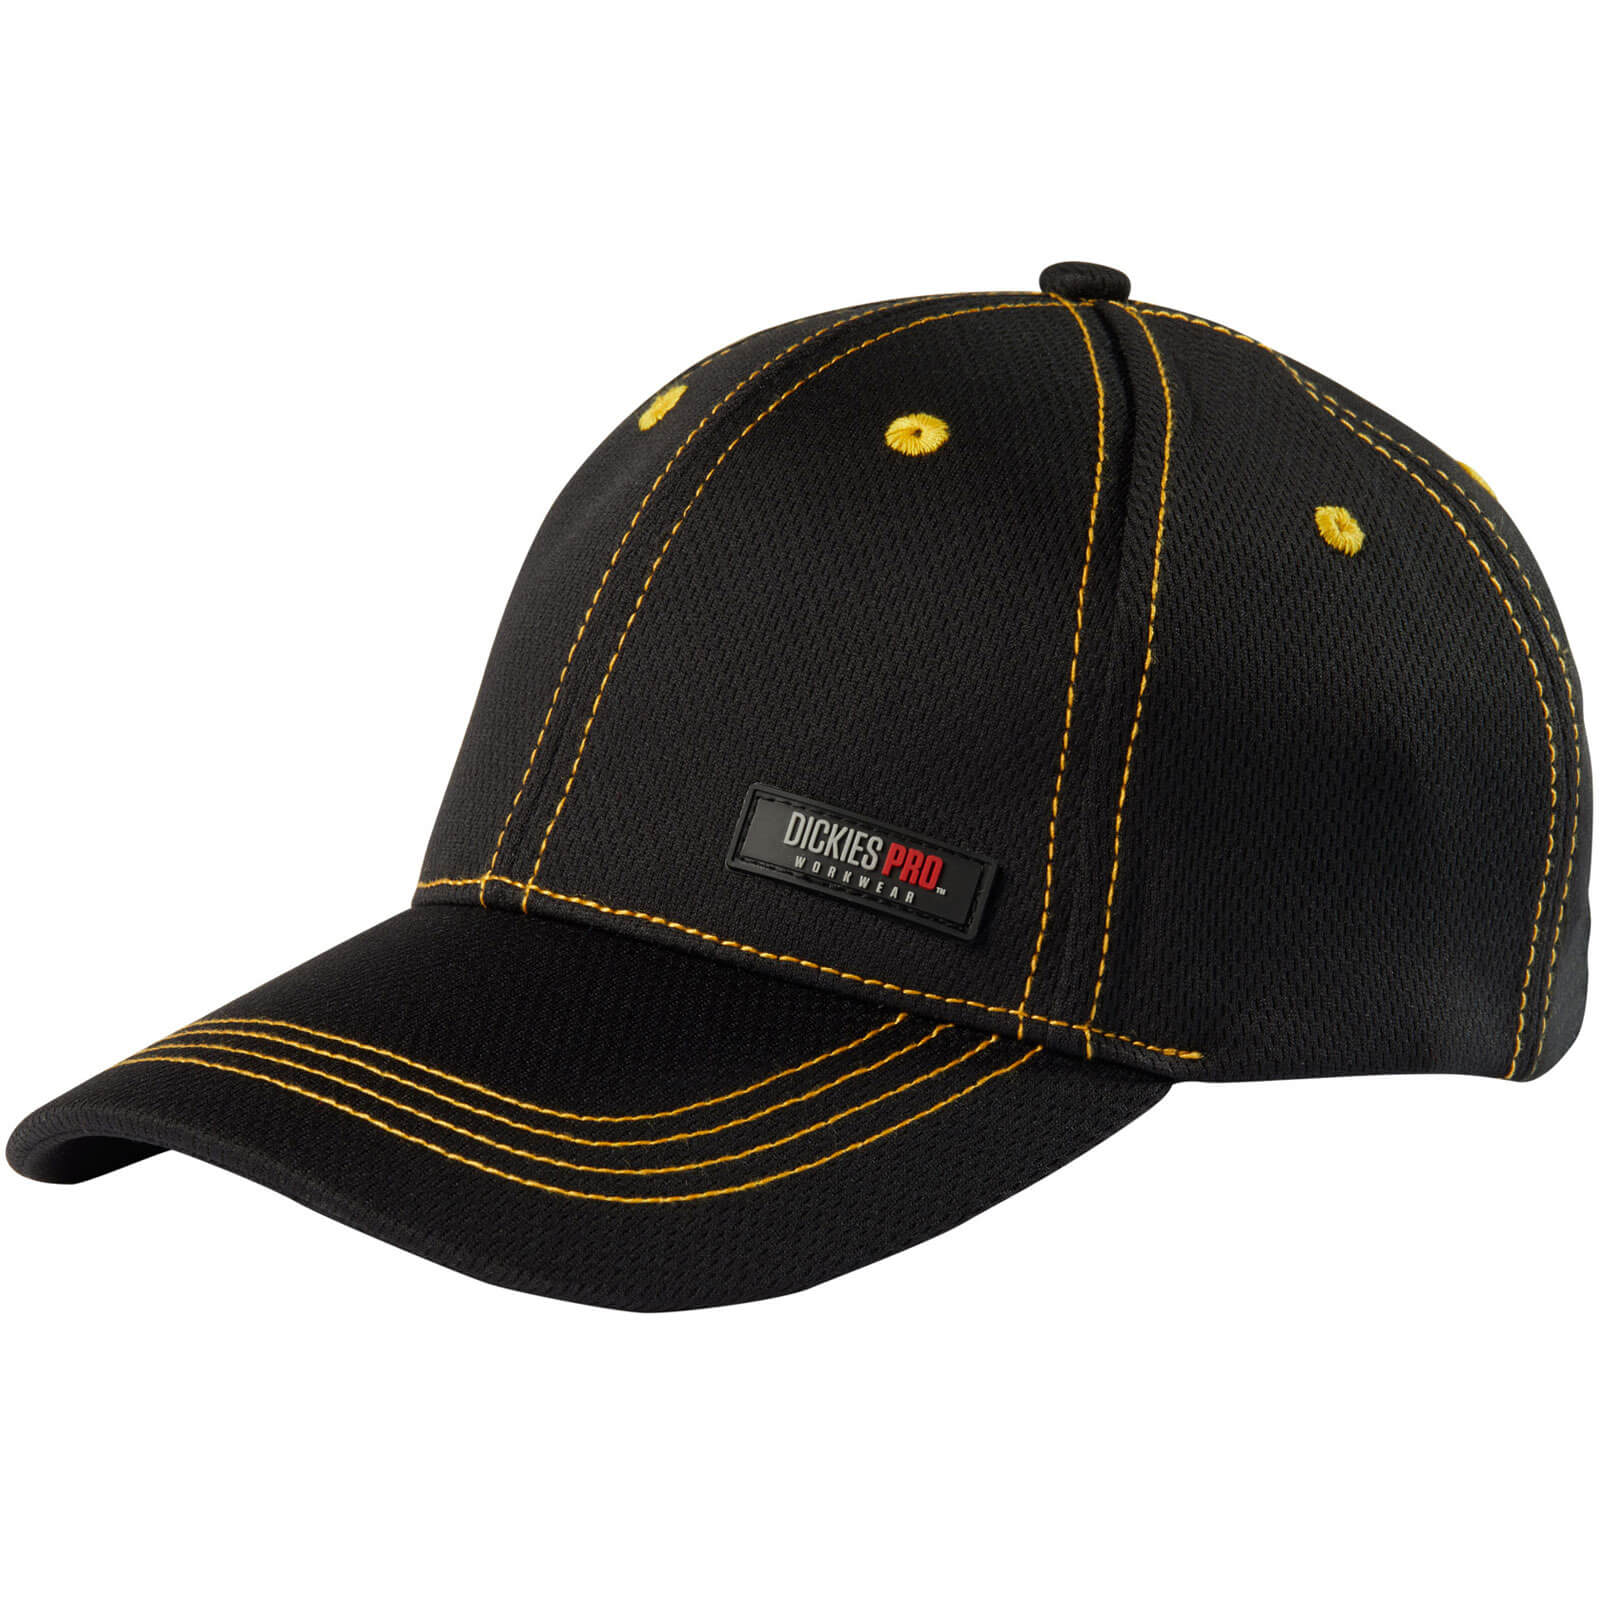 Image of Dickies Pro Cap Yellow / Black One Size